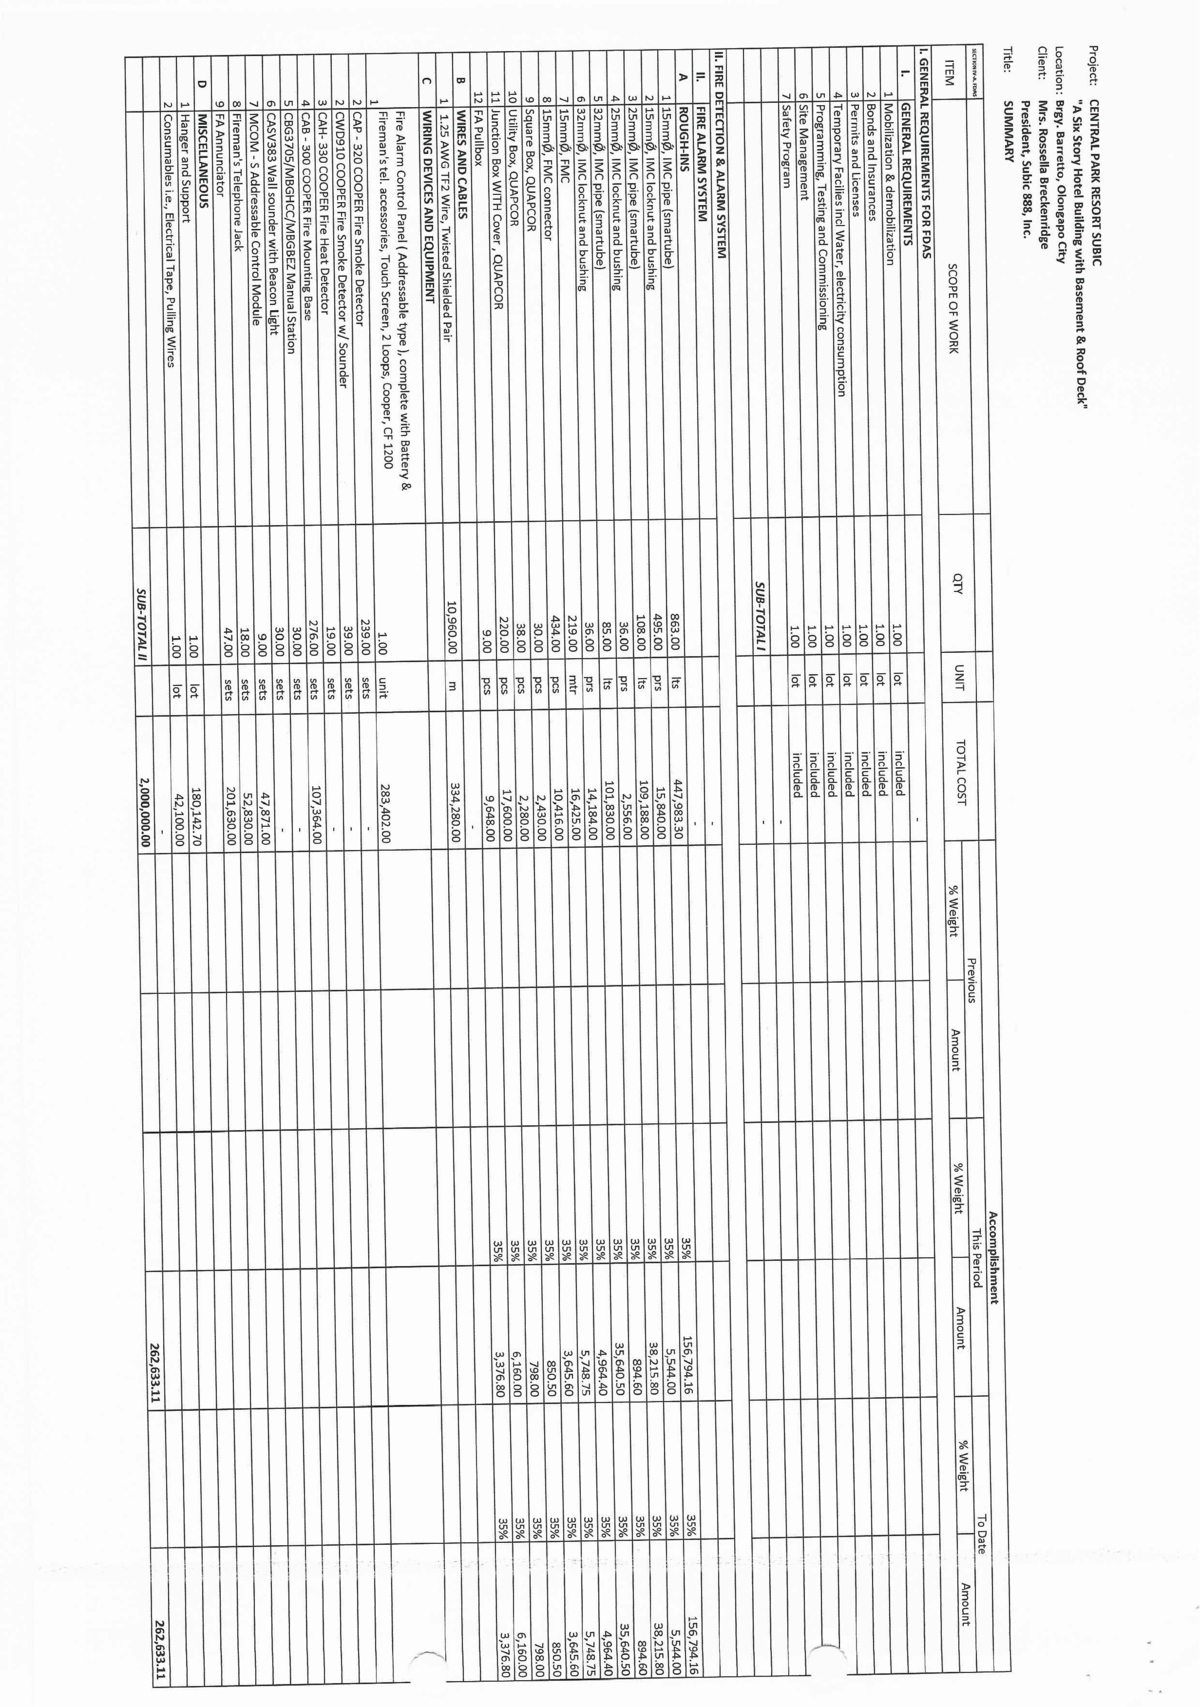 Index Of Targets 11233 Fda S Wiring Diagram Image 16